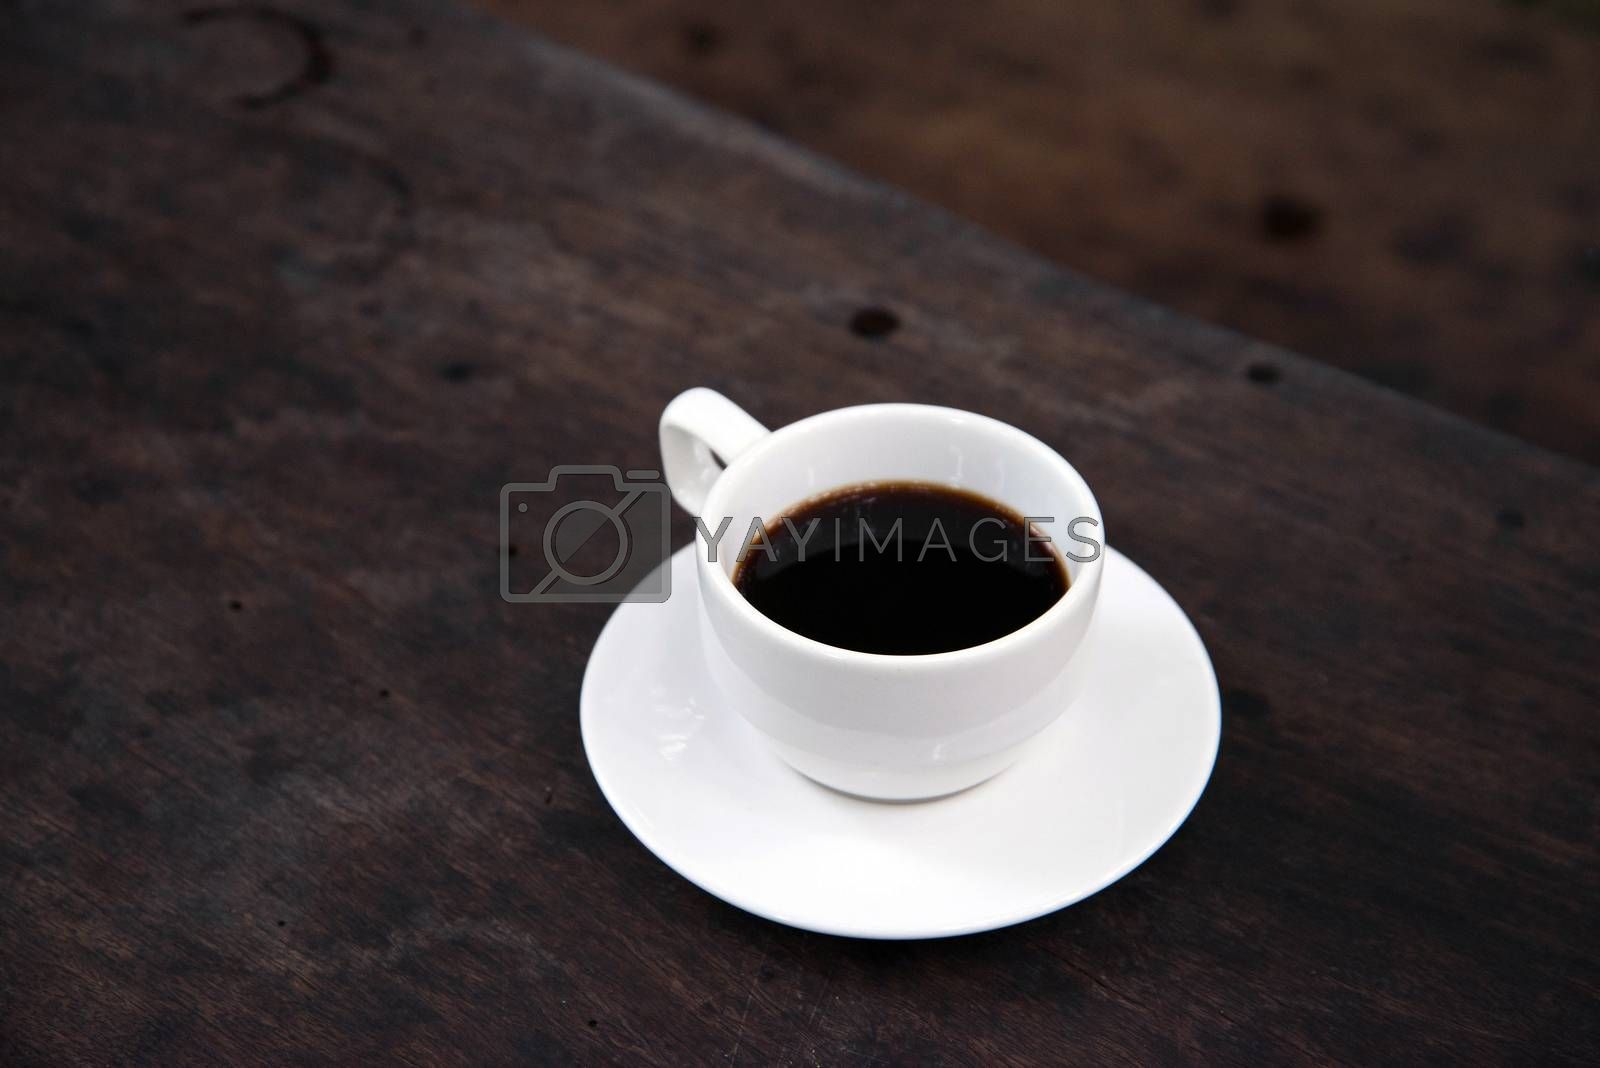 White Coffee Cup on a Wooden Table  by jakgree